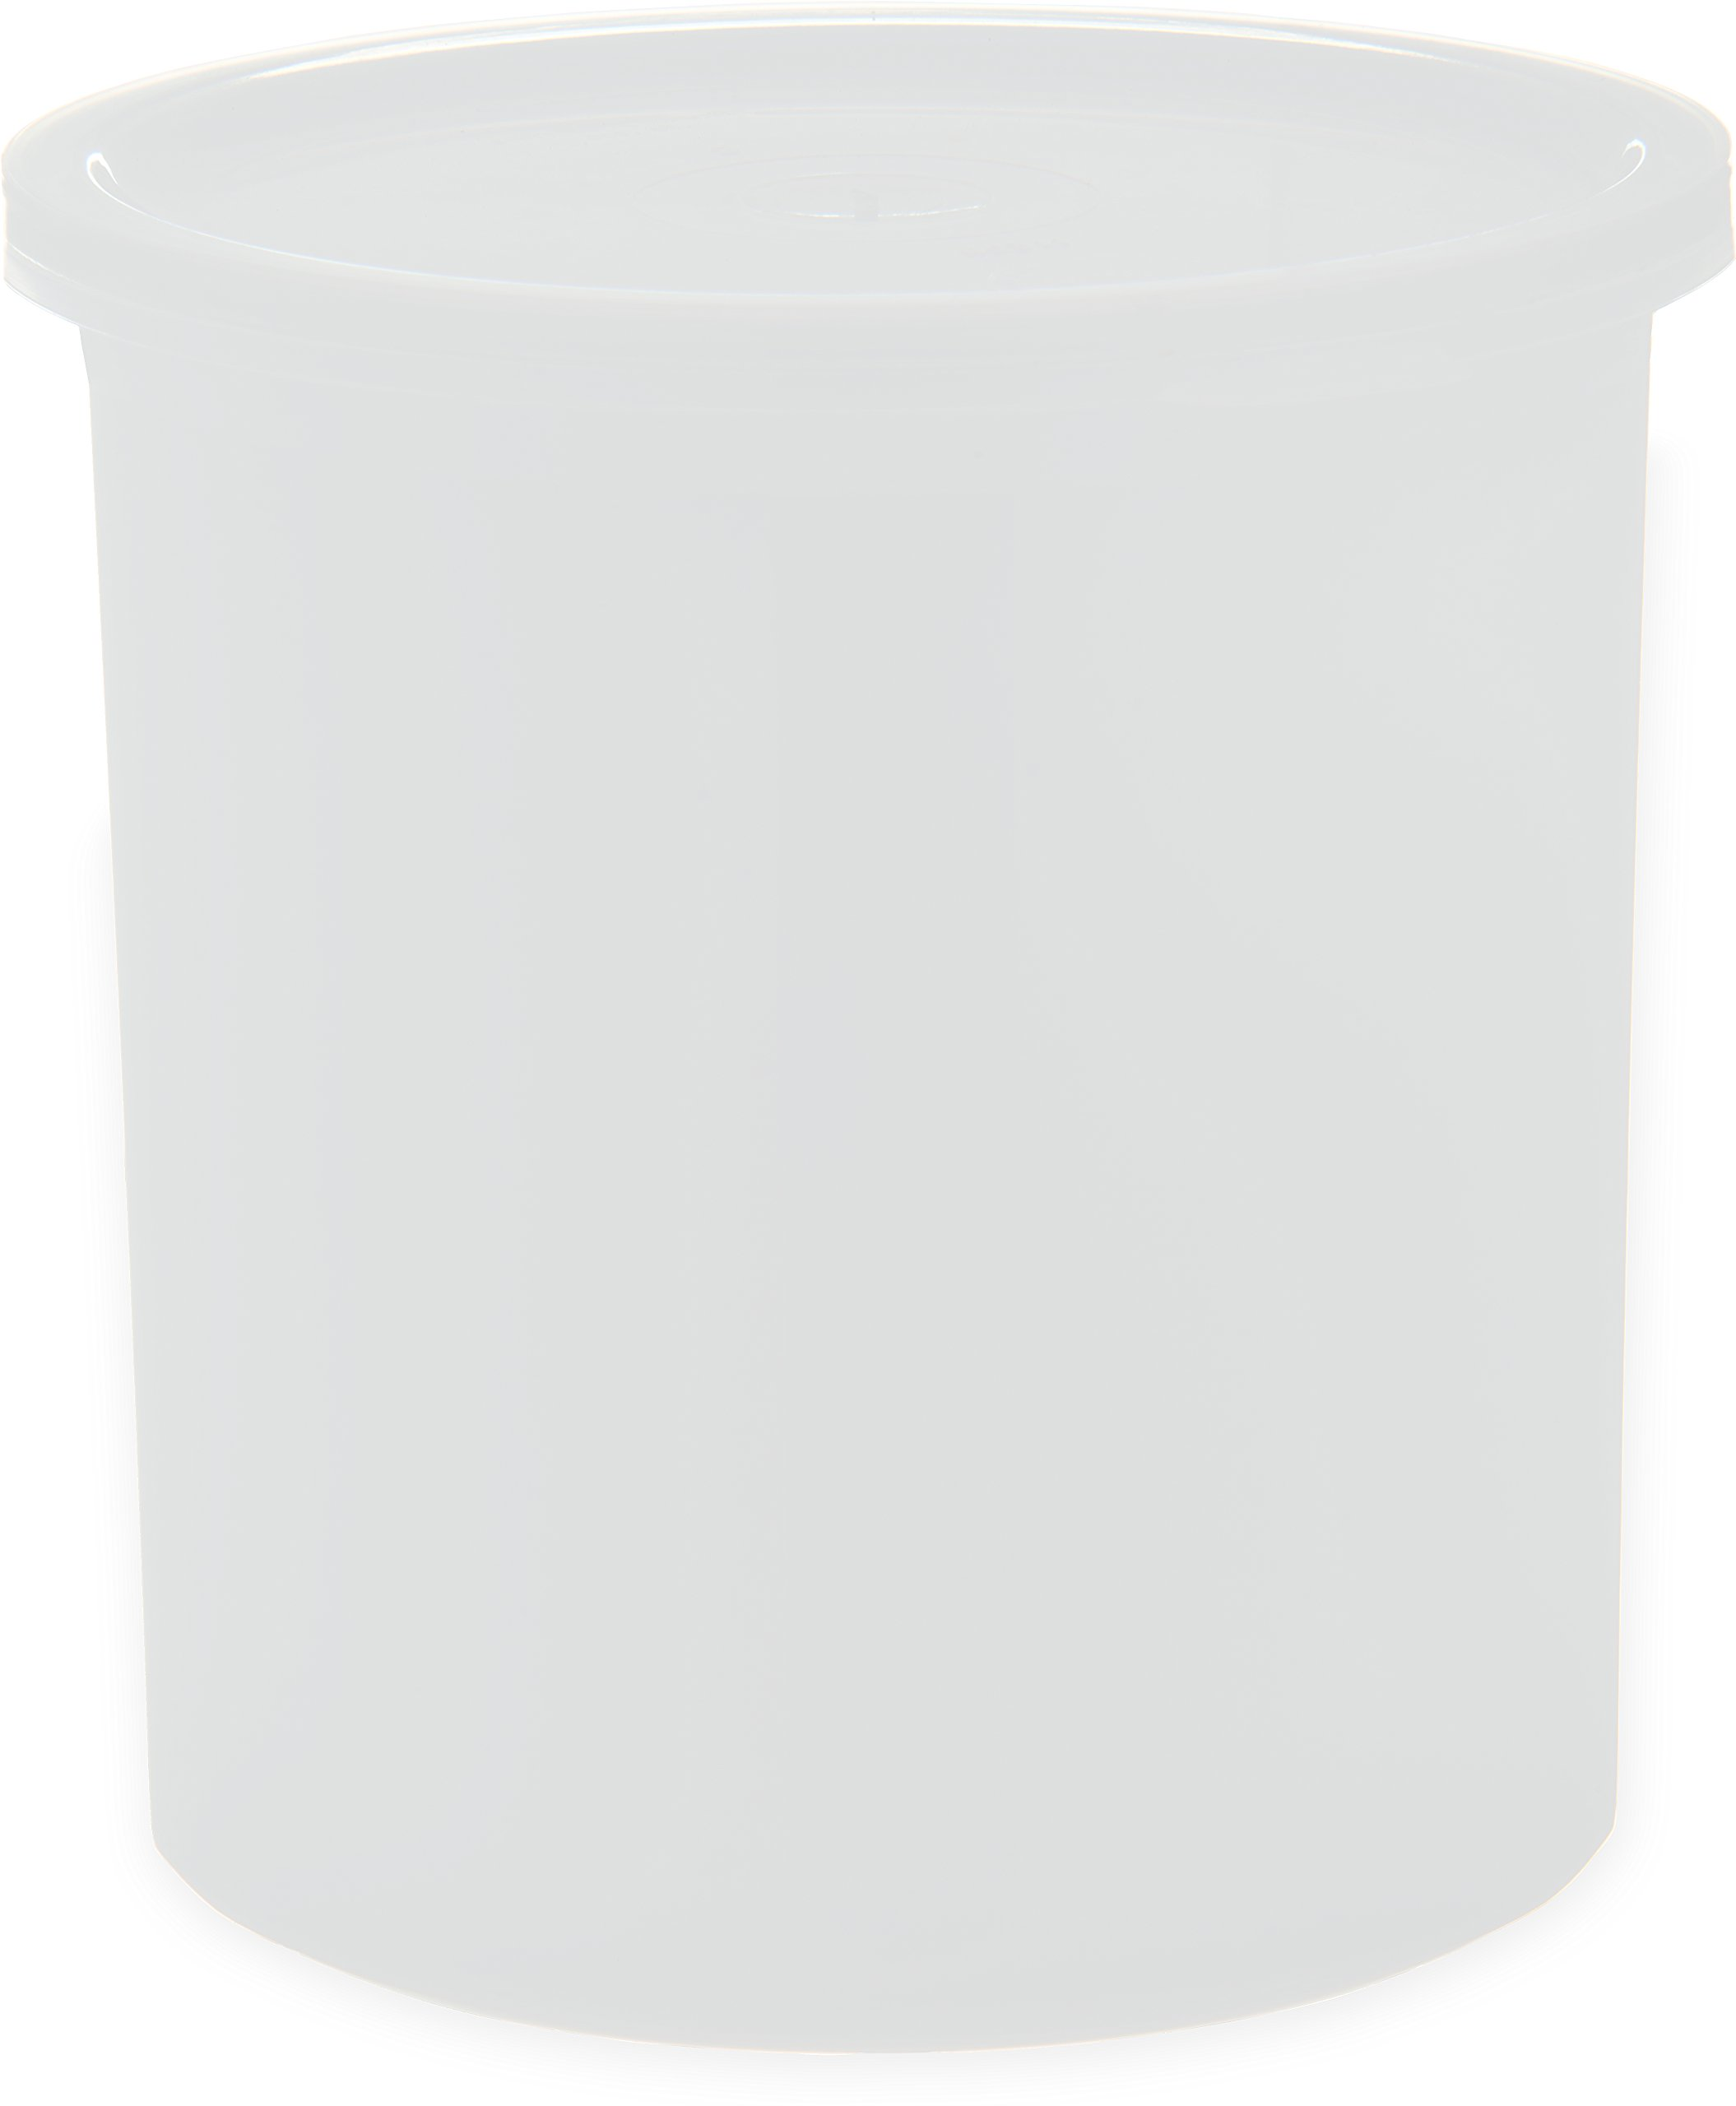 Carlisle 030102 Solid Color Commercial Round Storage Container with Lid, 1.2 Quart Capacity, White (Pack of 12)